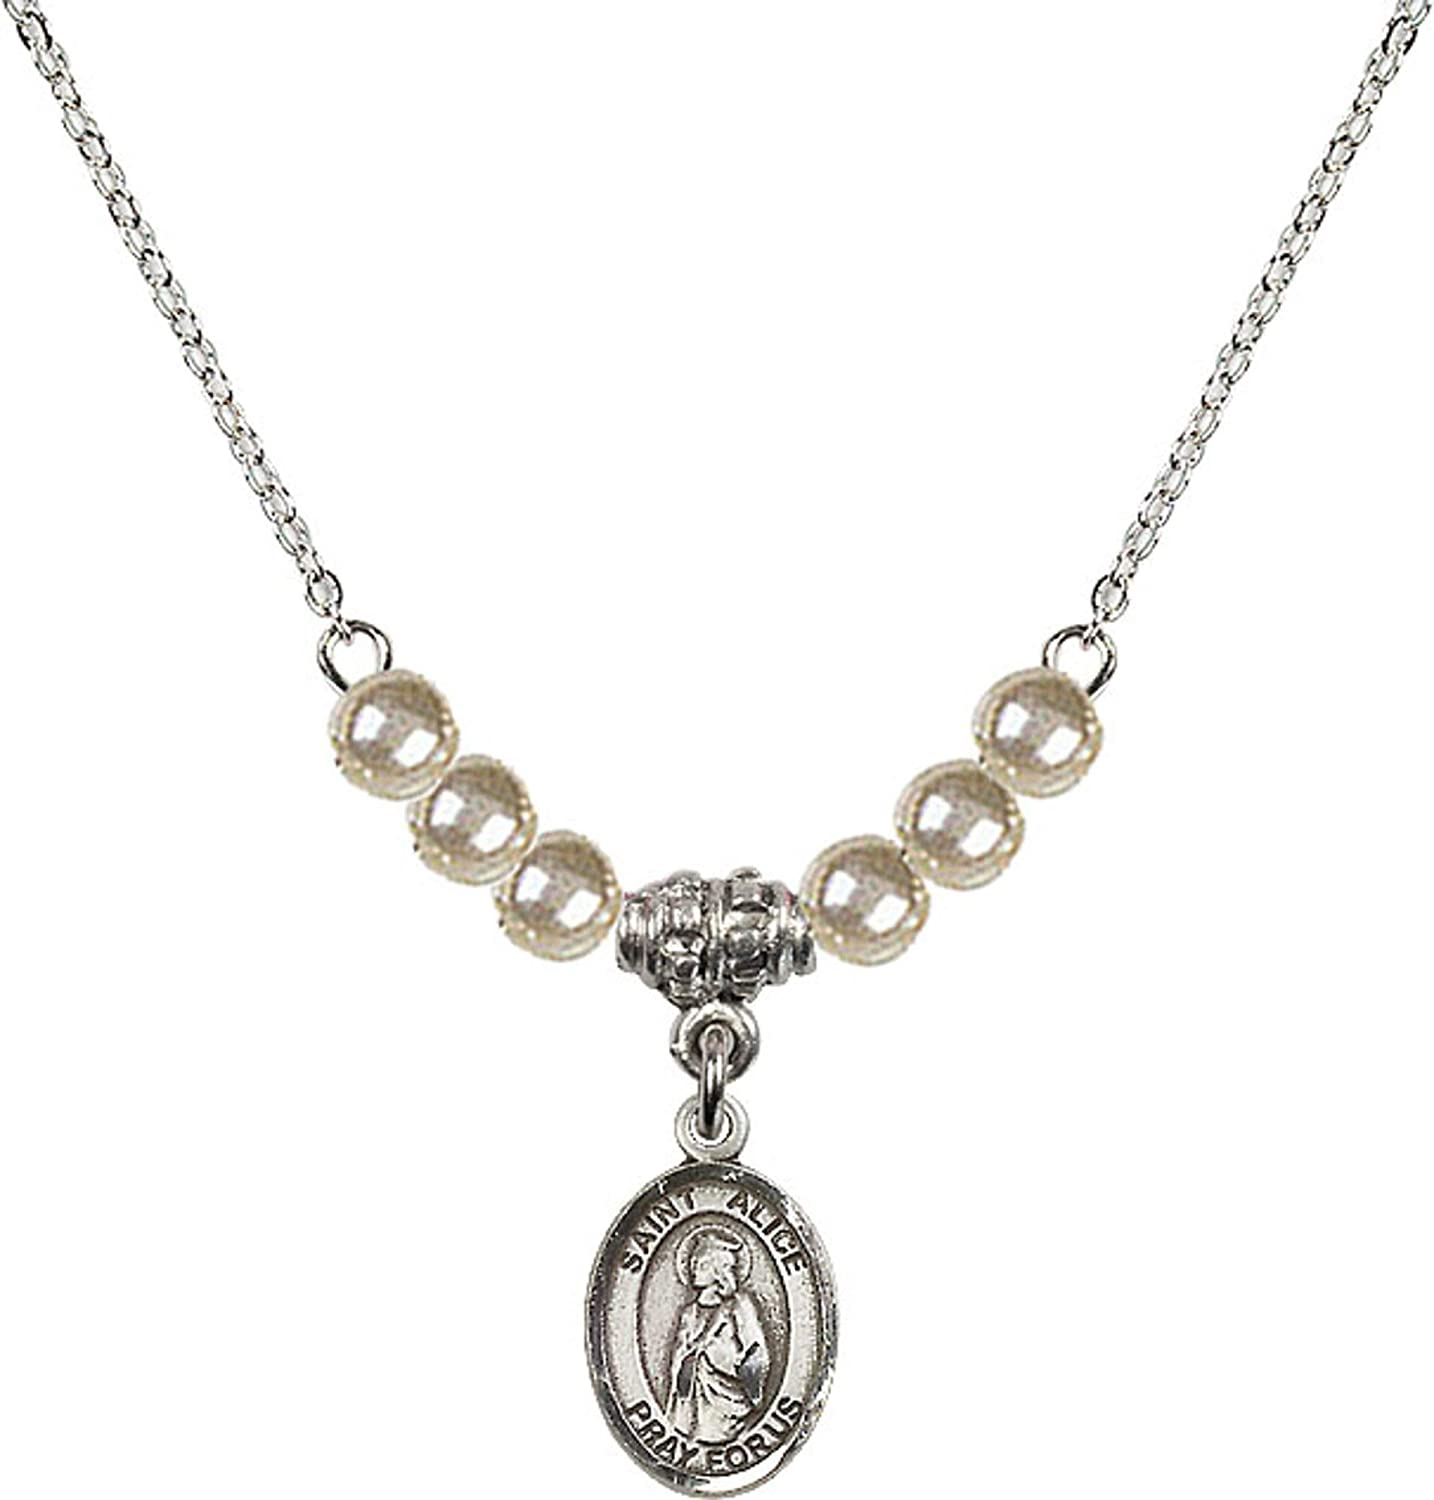 Bonyak Jewelry 18 Inch Rhodium Plated Necklace w// 4mm Faux-Pearl Beads and Saint Alice Charm